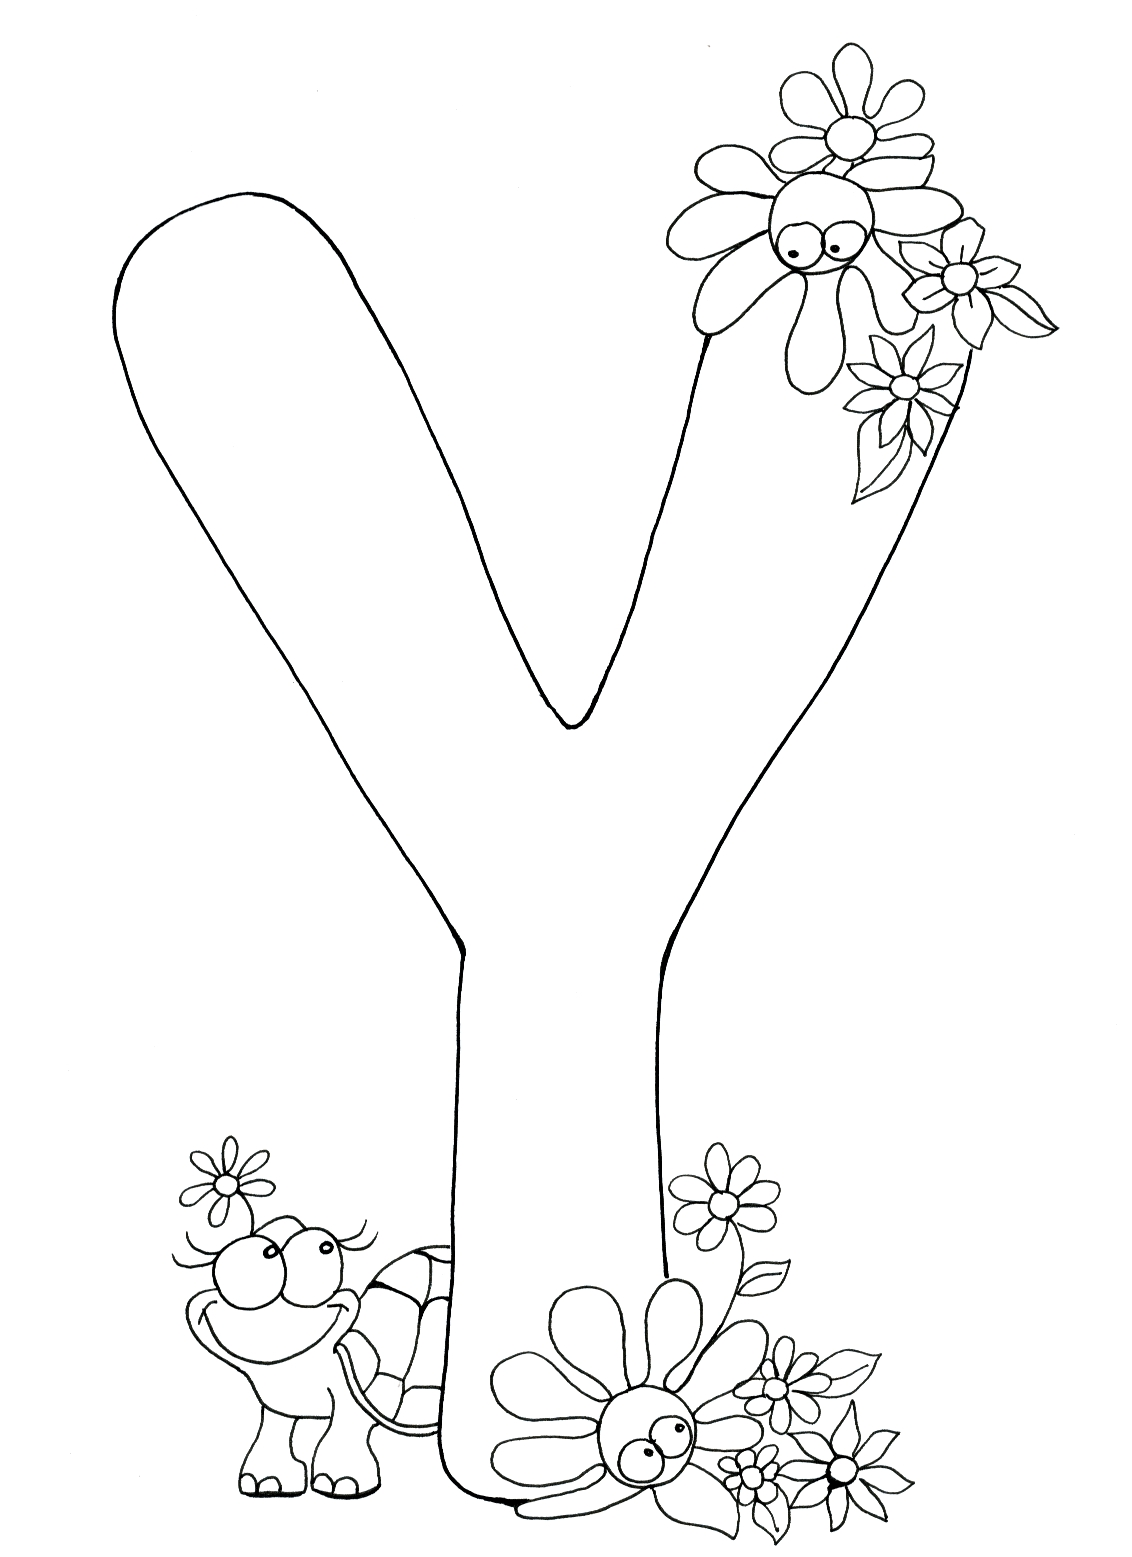 Letter Y Coloring Pages - Free Kids Coloring Pages Printable Coloring Book Pages